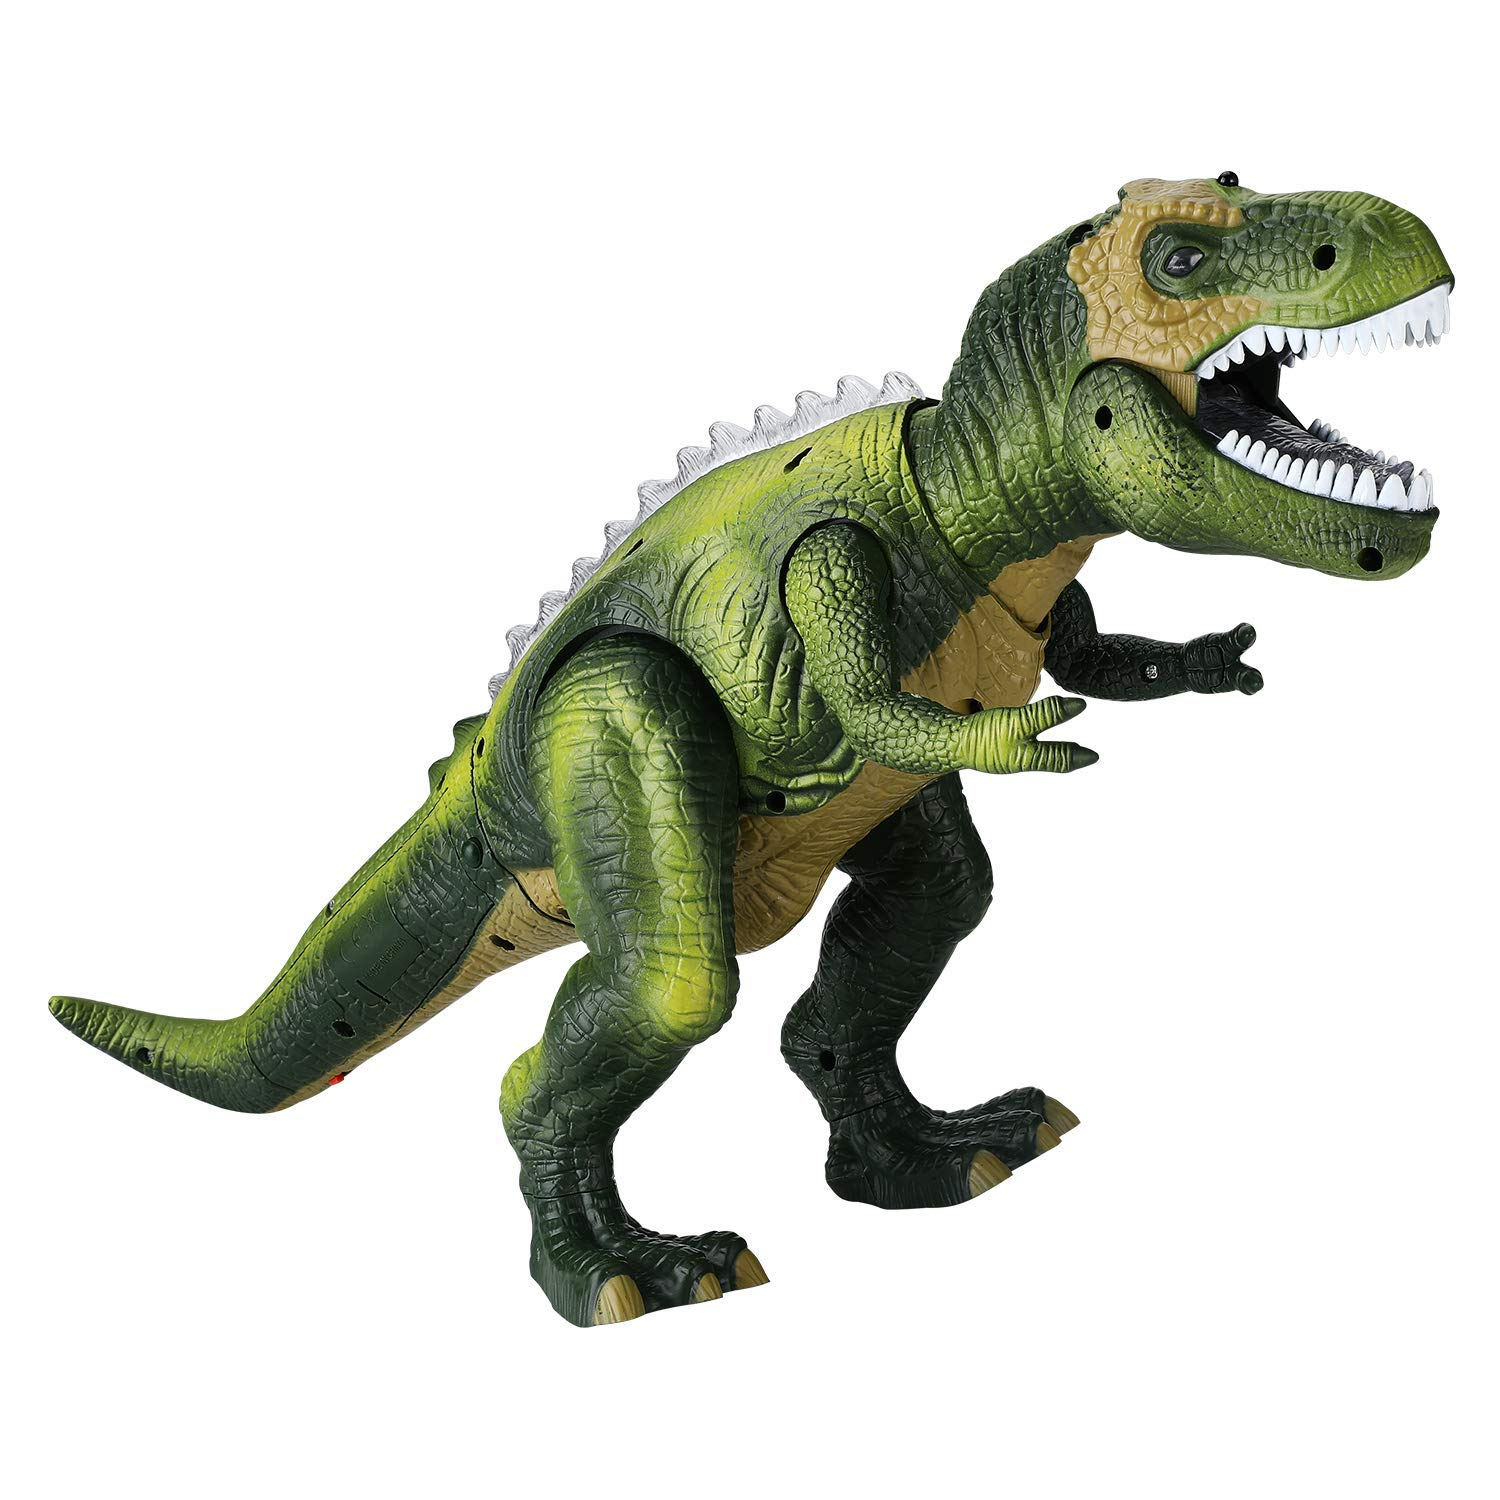 Tuko Light Up Remote Control Dinosaur Toys Jurassic World Walking and Roaring Realistic T-Rex Dinosaur Toys with Glowing Eyes, Walking Movement, Shaking Head for Toddlers Boys Girls by Tuko (Image #2)